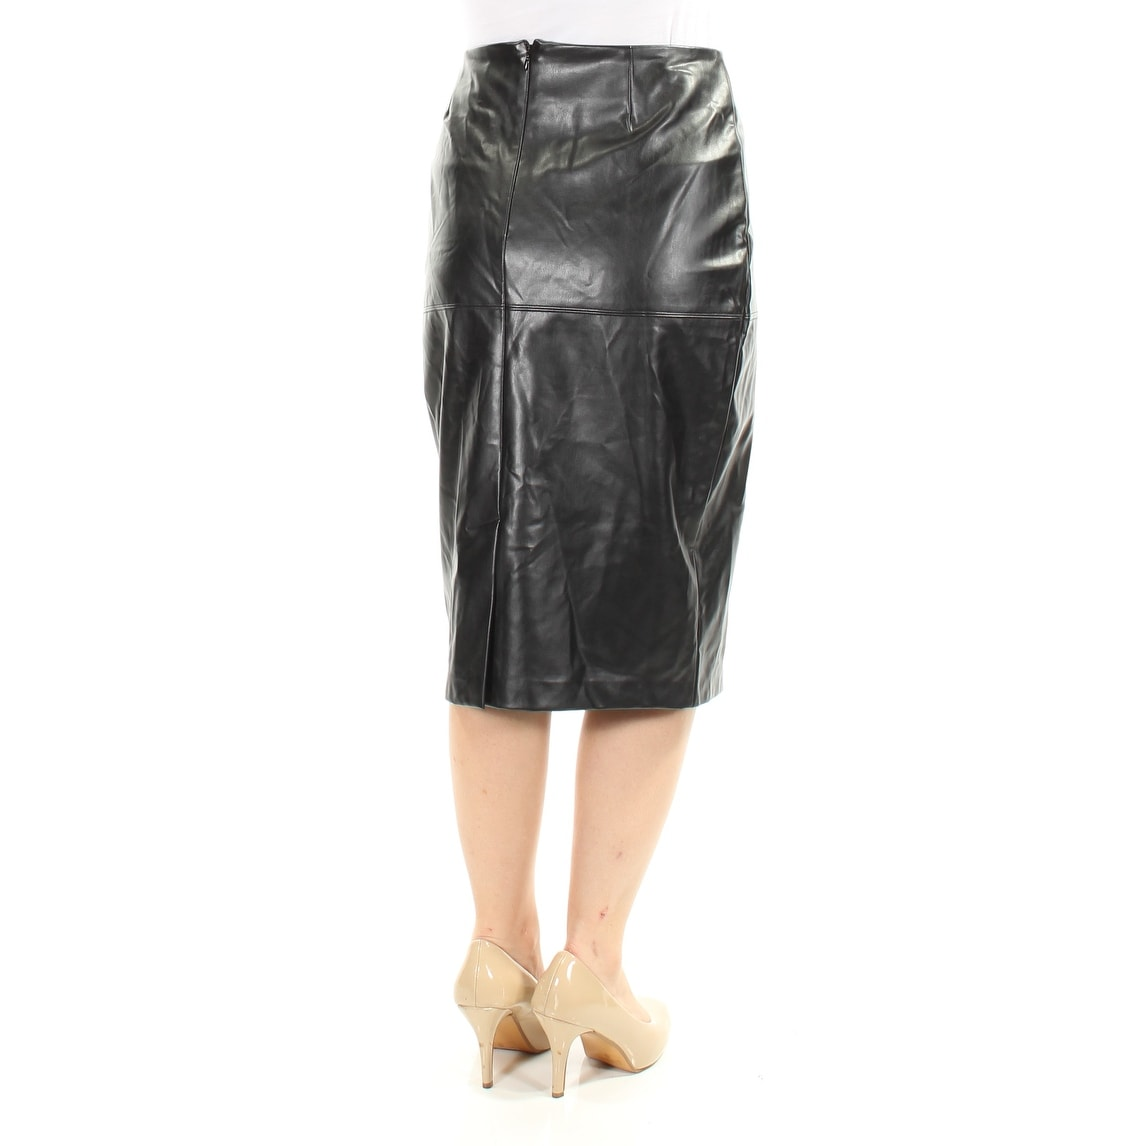 5e1fc70cfa Shop INC Womens Black Faux Leather Zippered Below The Knee Pencil Skirt  Size: 8 - On Sale - Free Shipping On Orders Over $45 - Overstock - 21510040